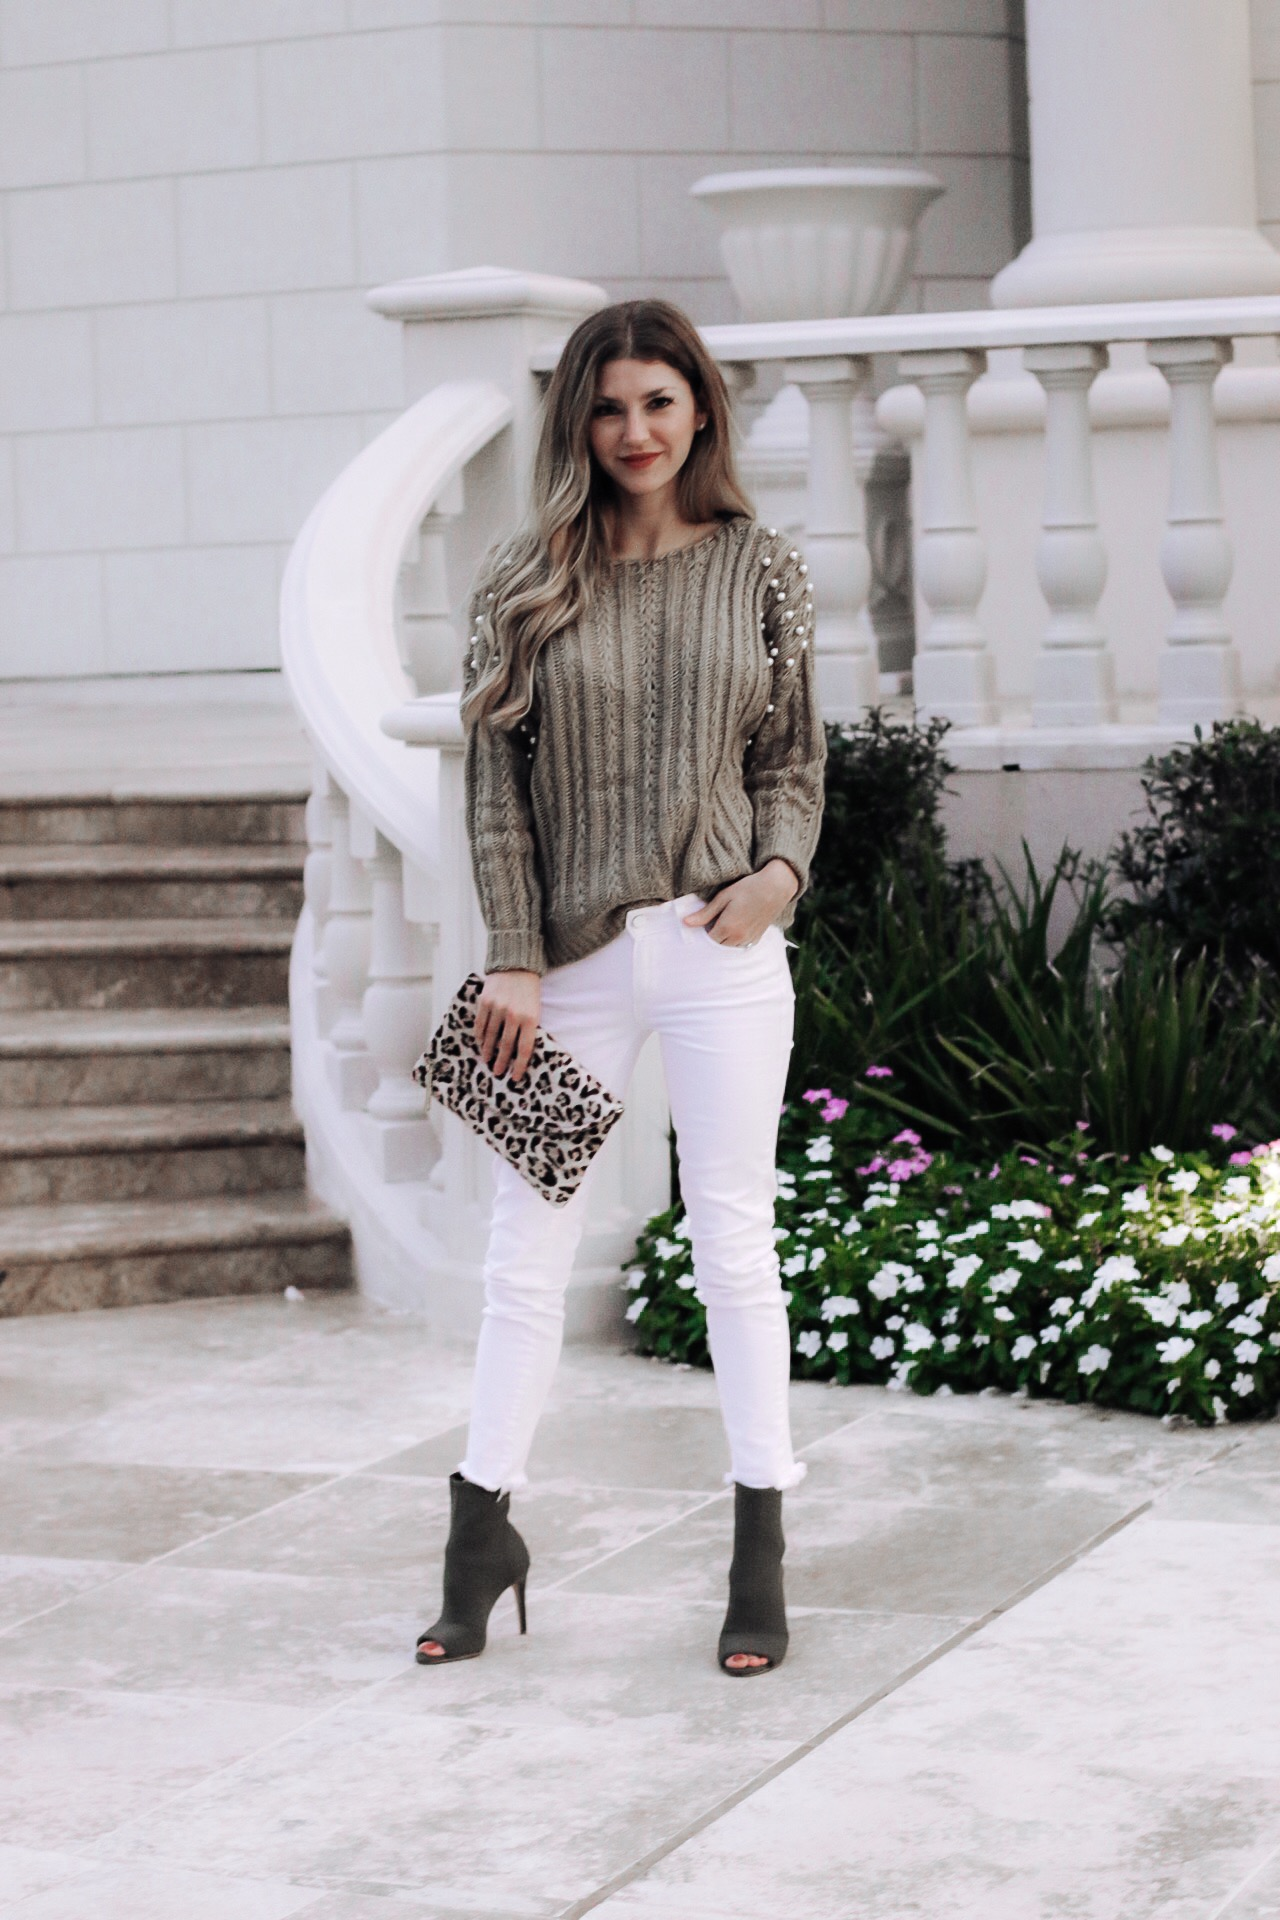 On the front porch of my in-laws wearing shein in pearl sweater, white jeans and ankle booties